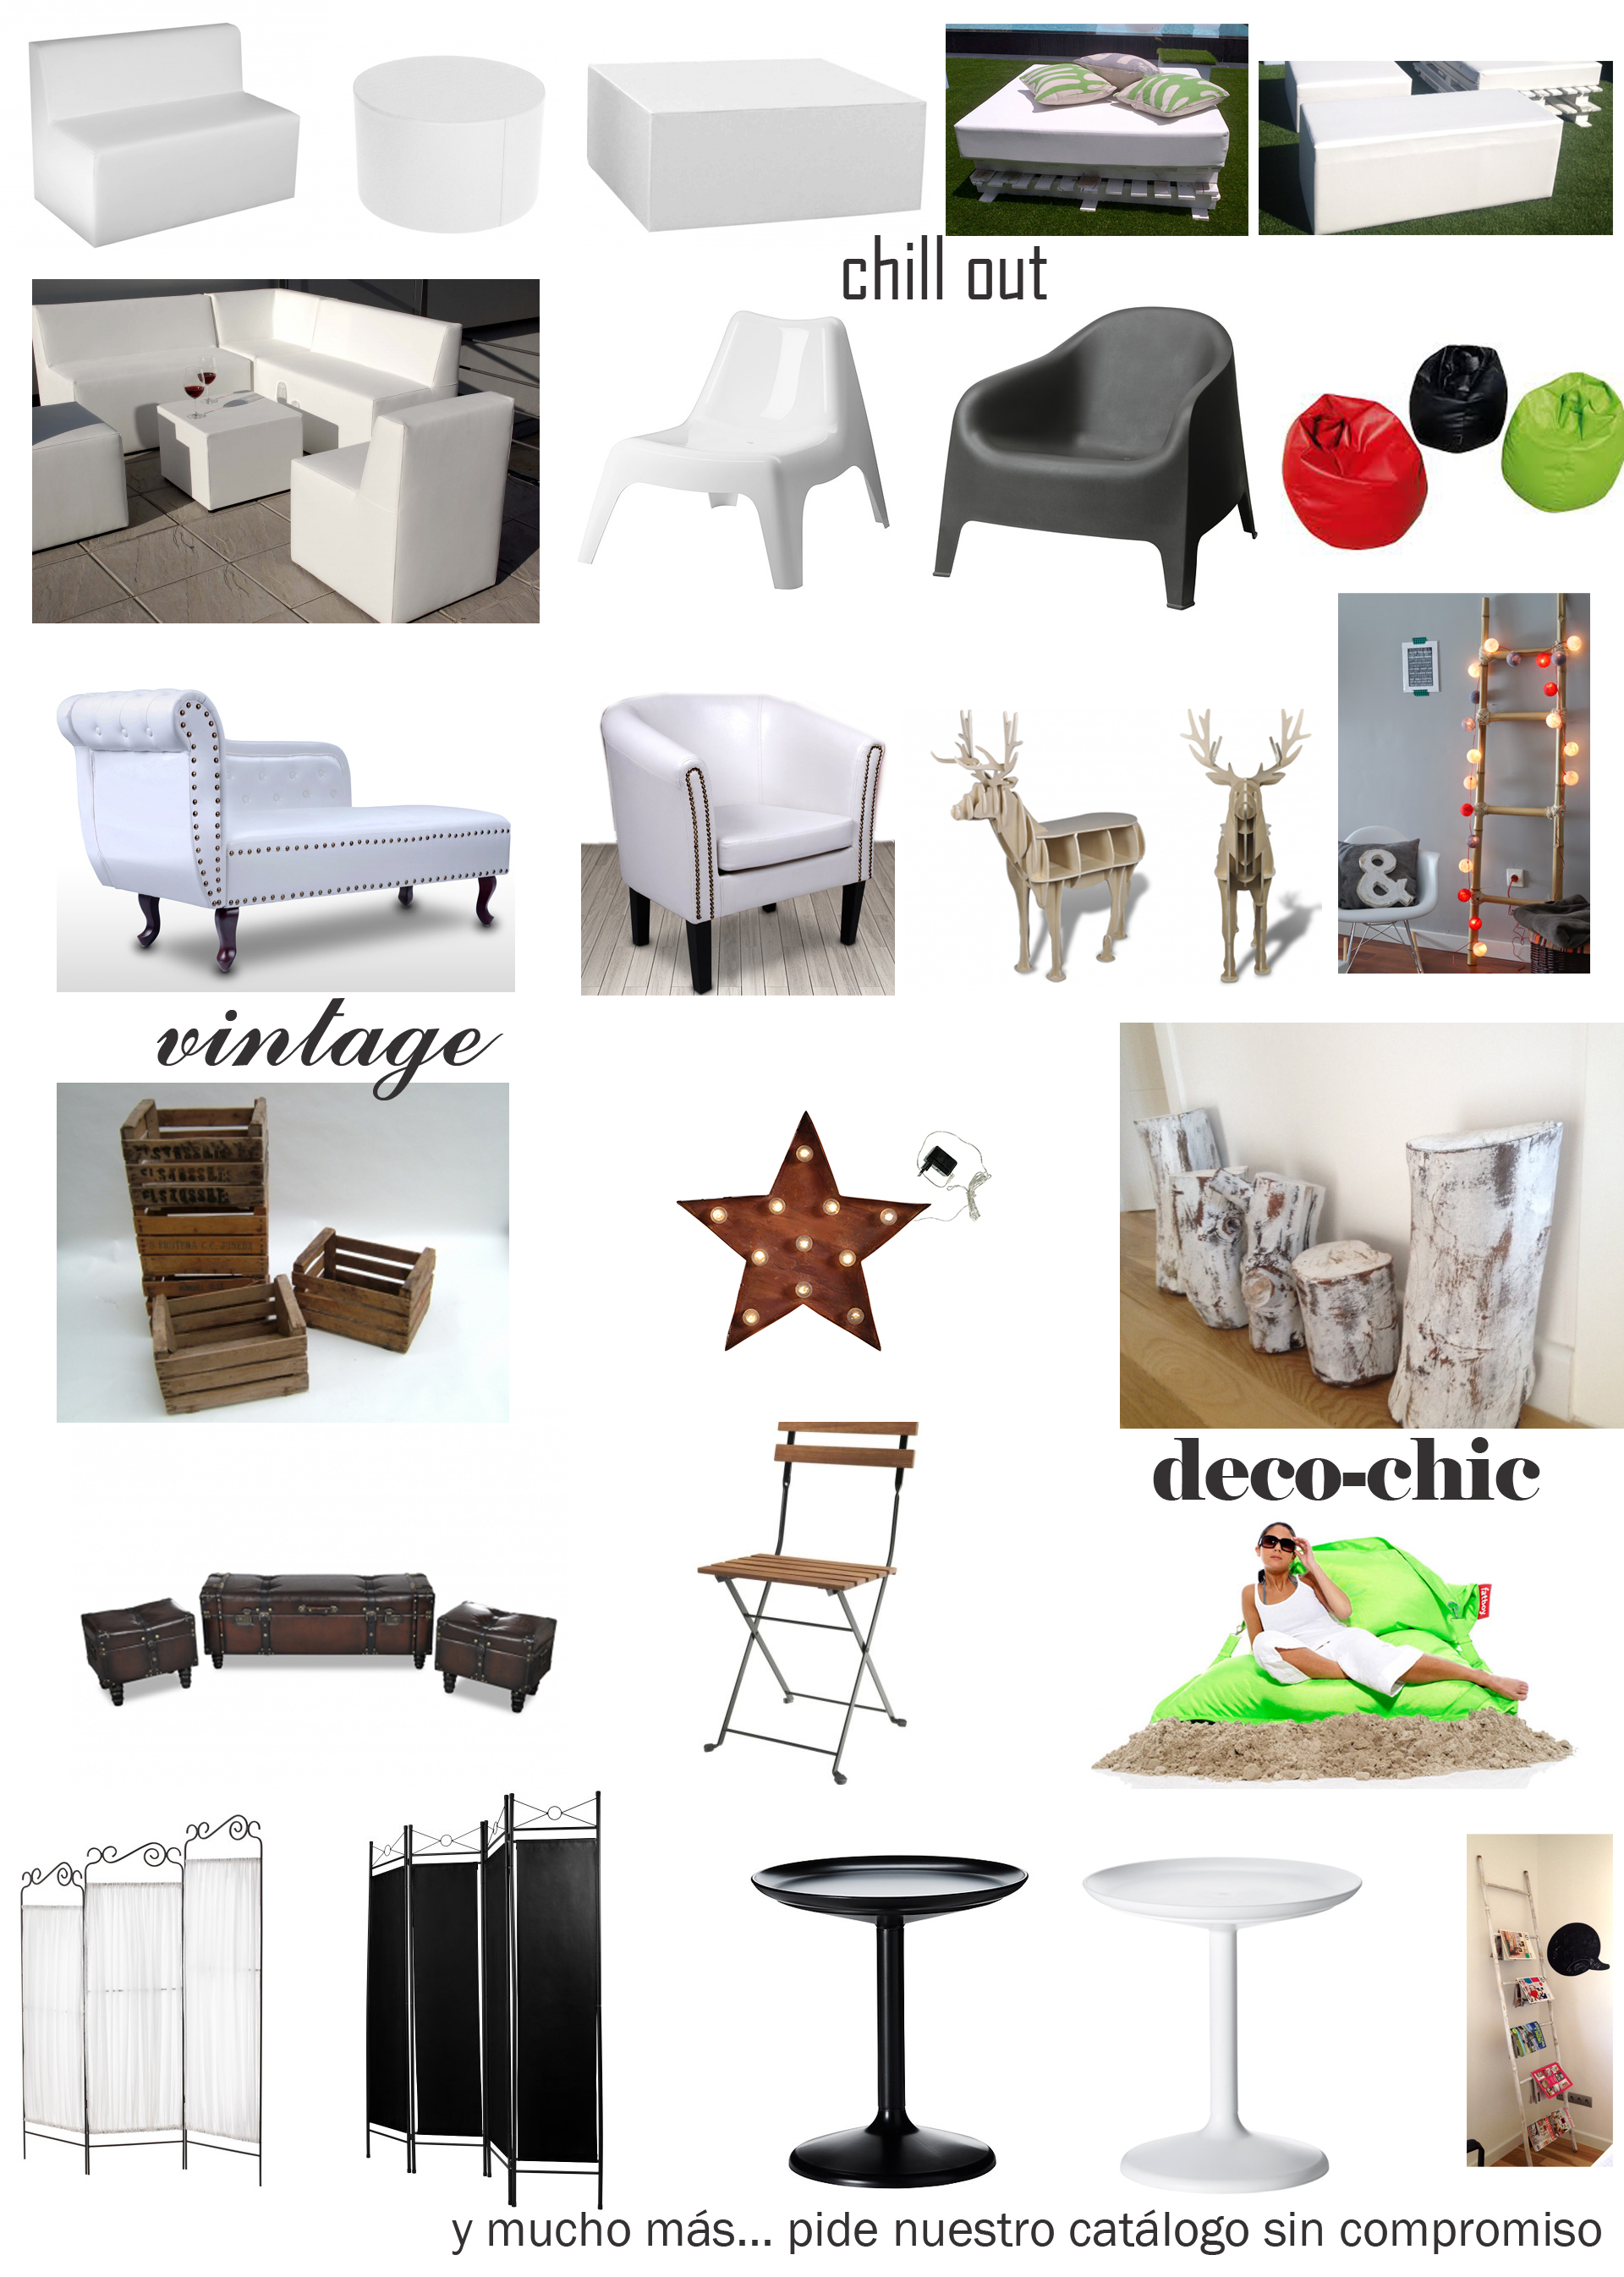 Mobiliario Chill Out | Alquiler Muebles Eventos